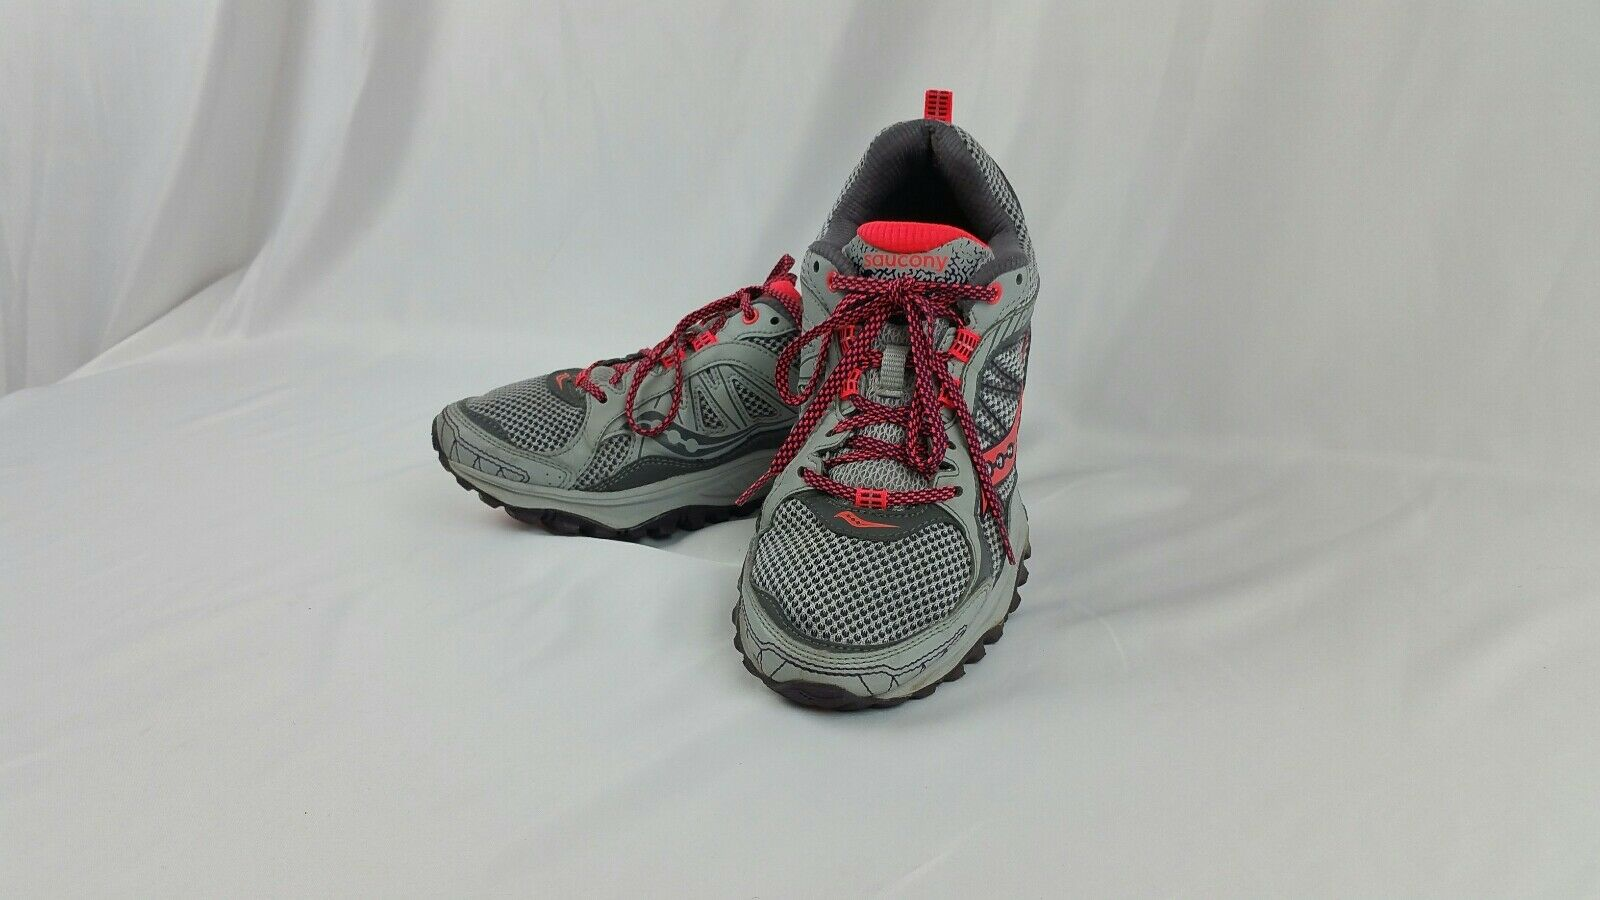 Women's Saucony Excursion TR 9 S15249-1 Running Training shoes size 7.5